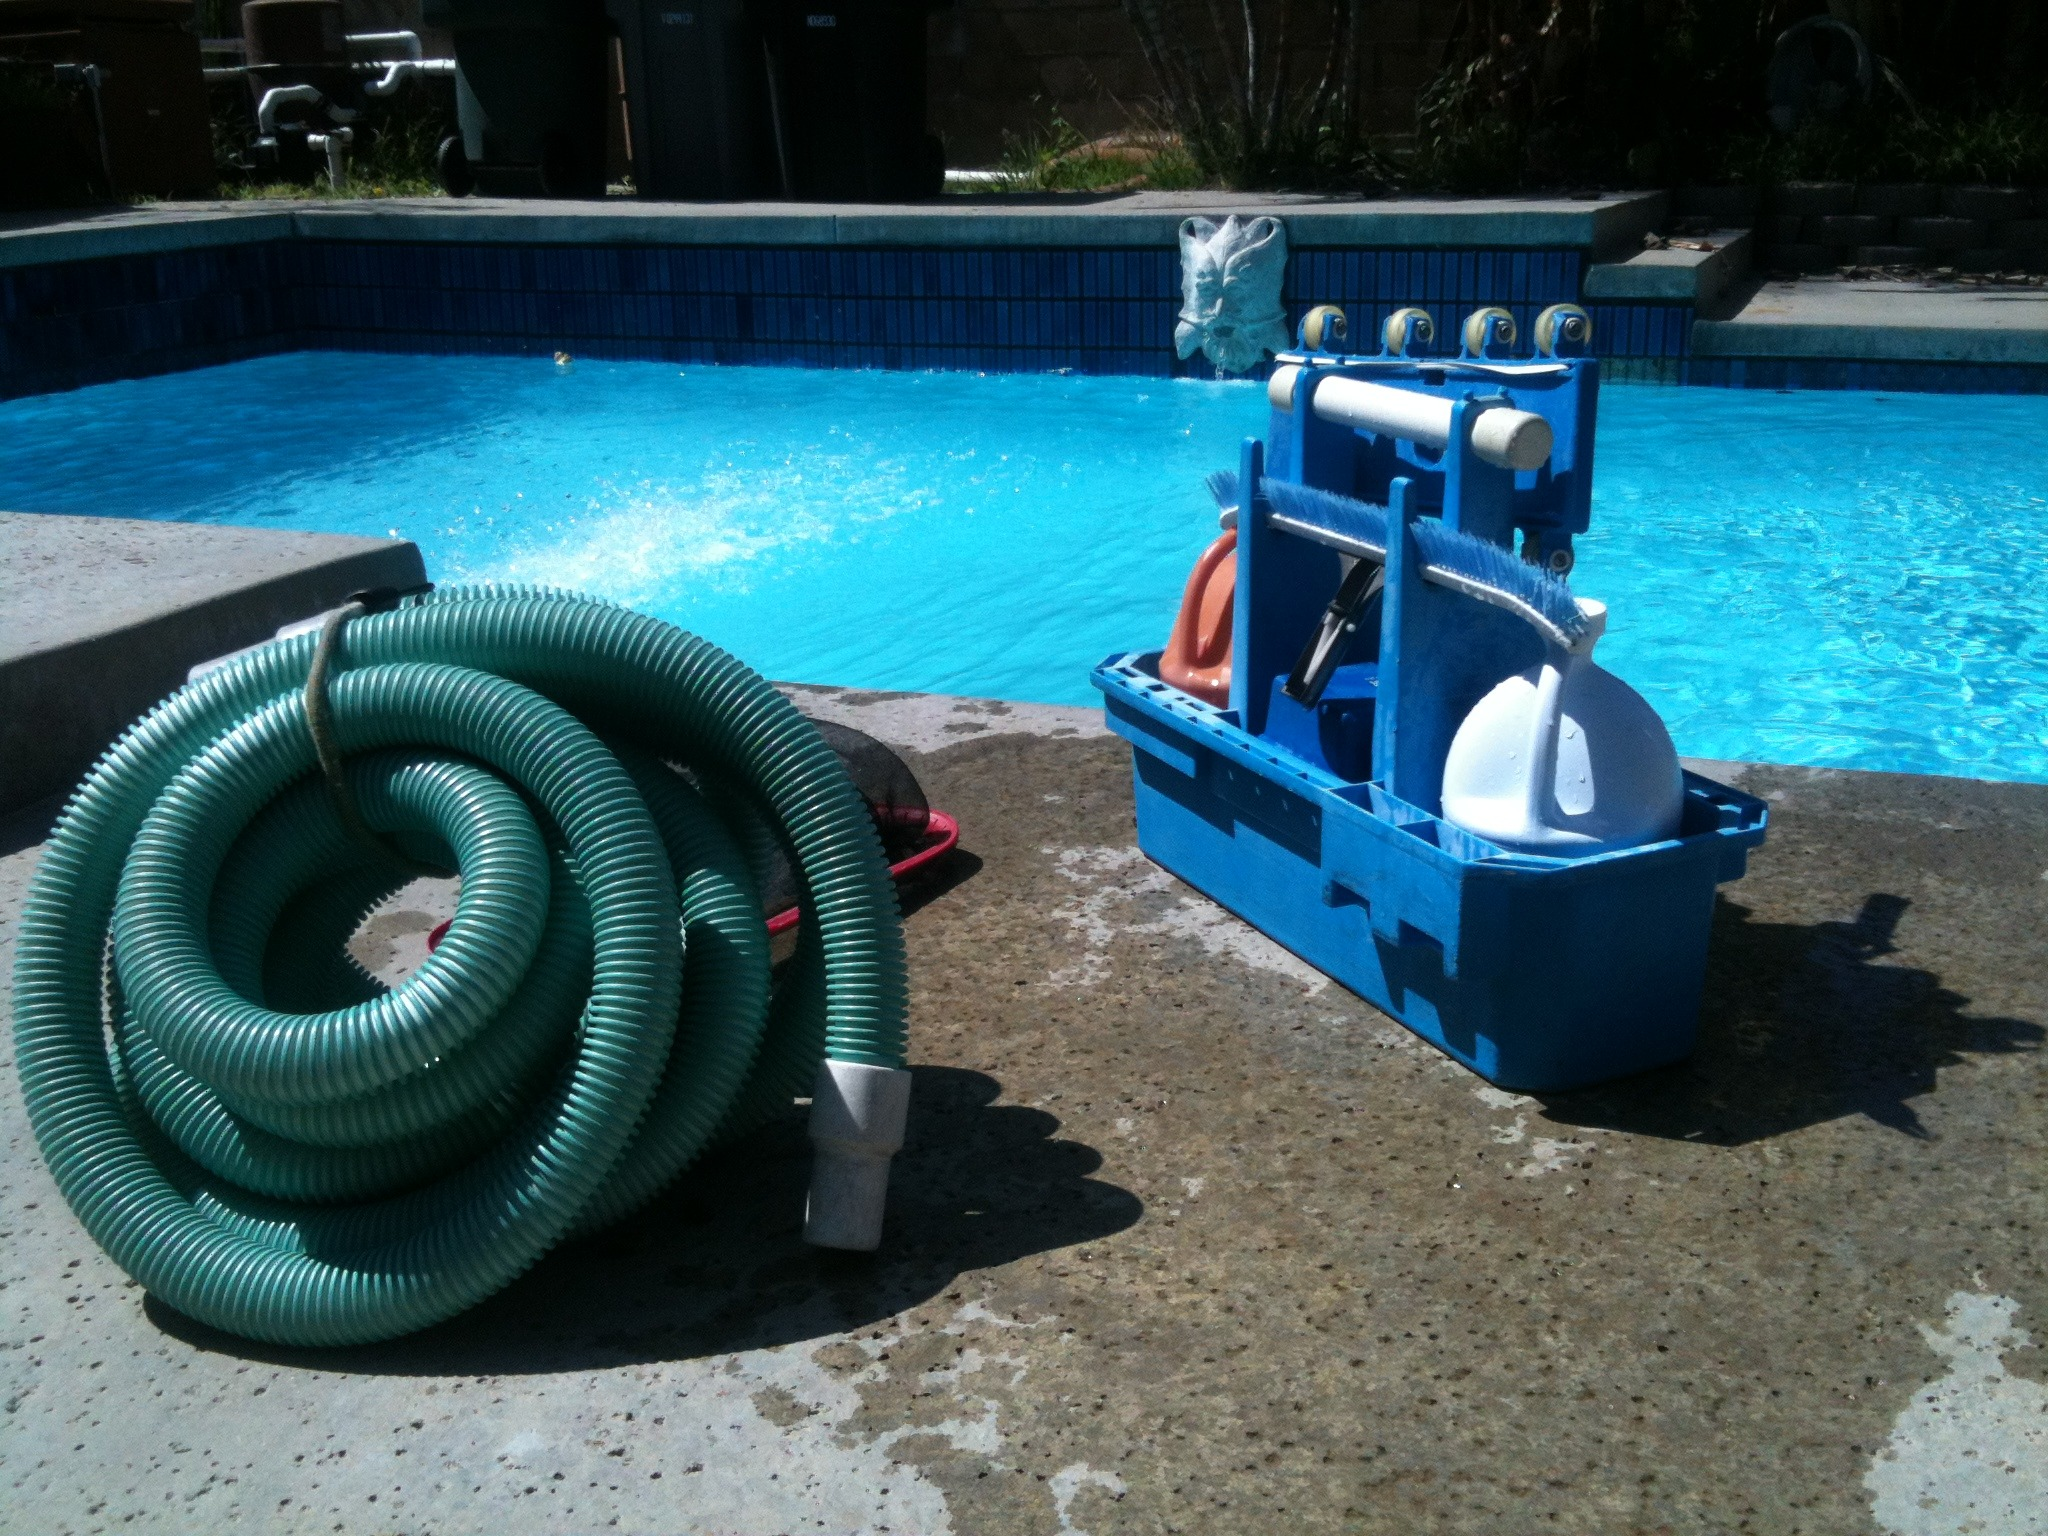 Get your pool clean and ready for winter